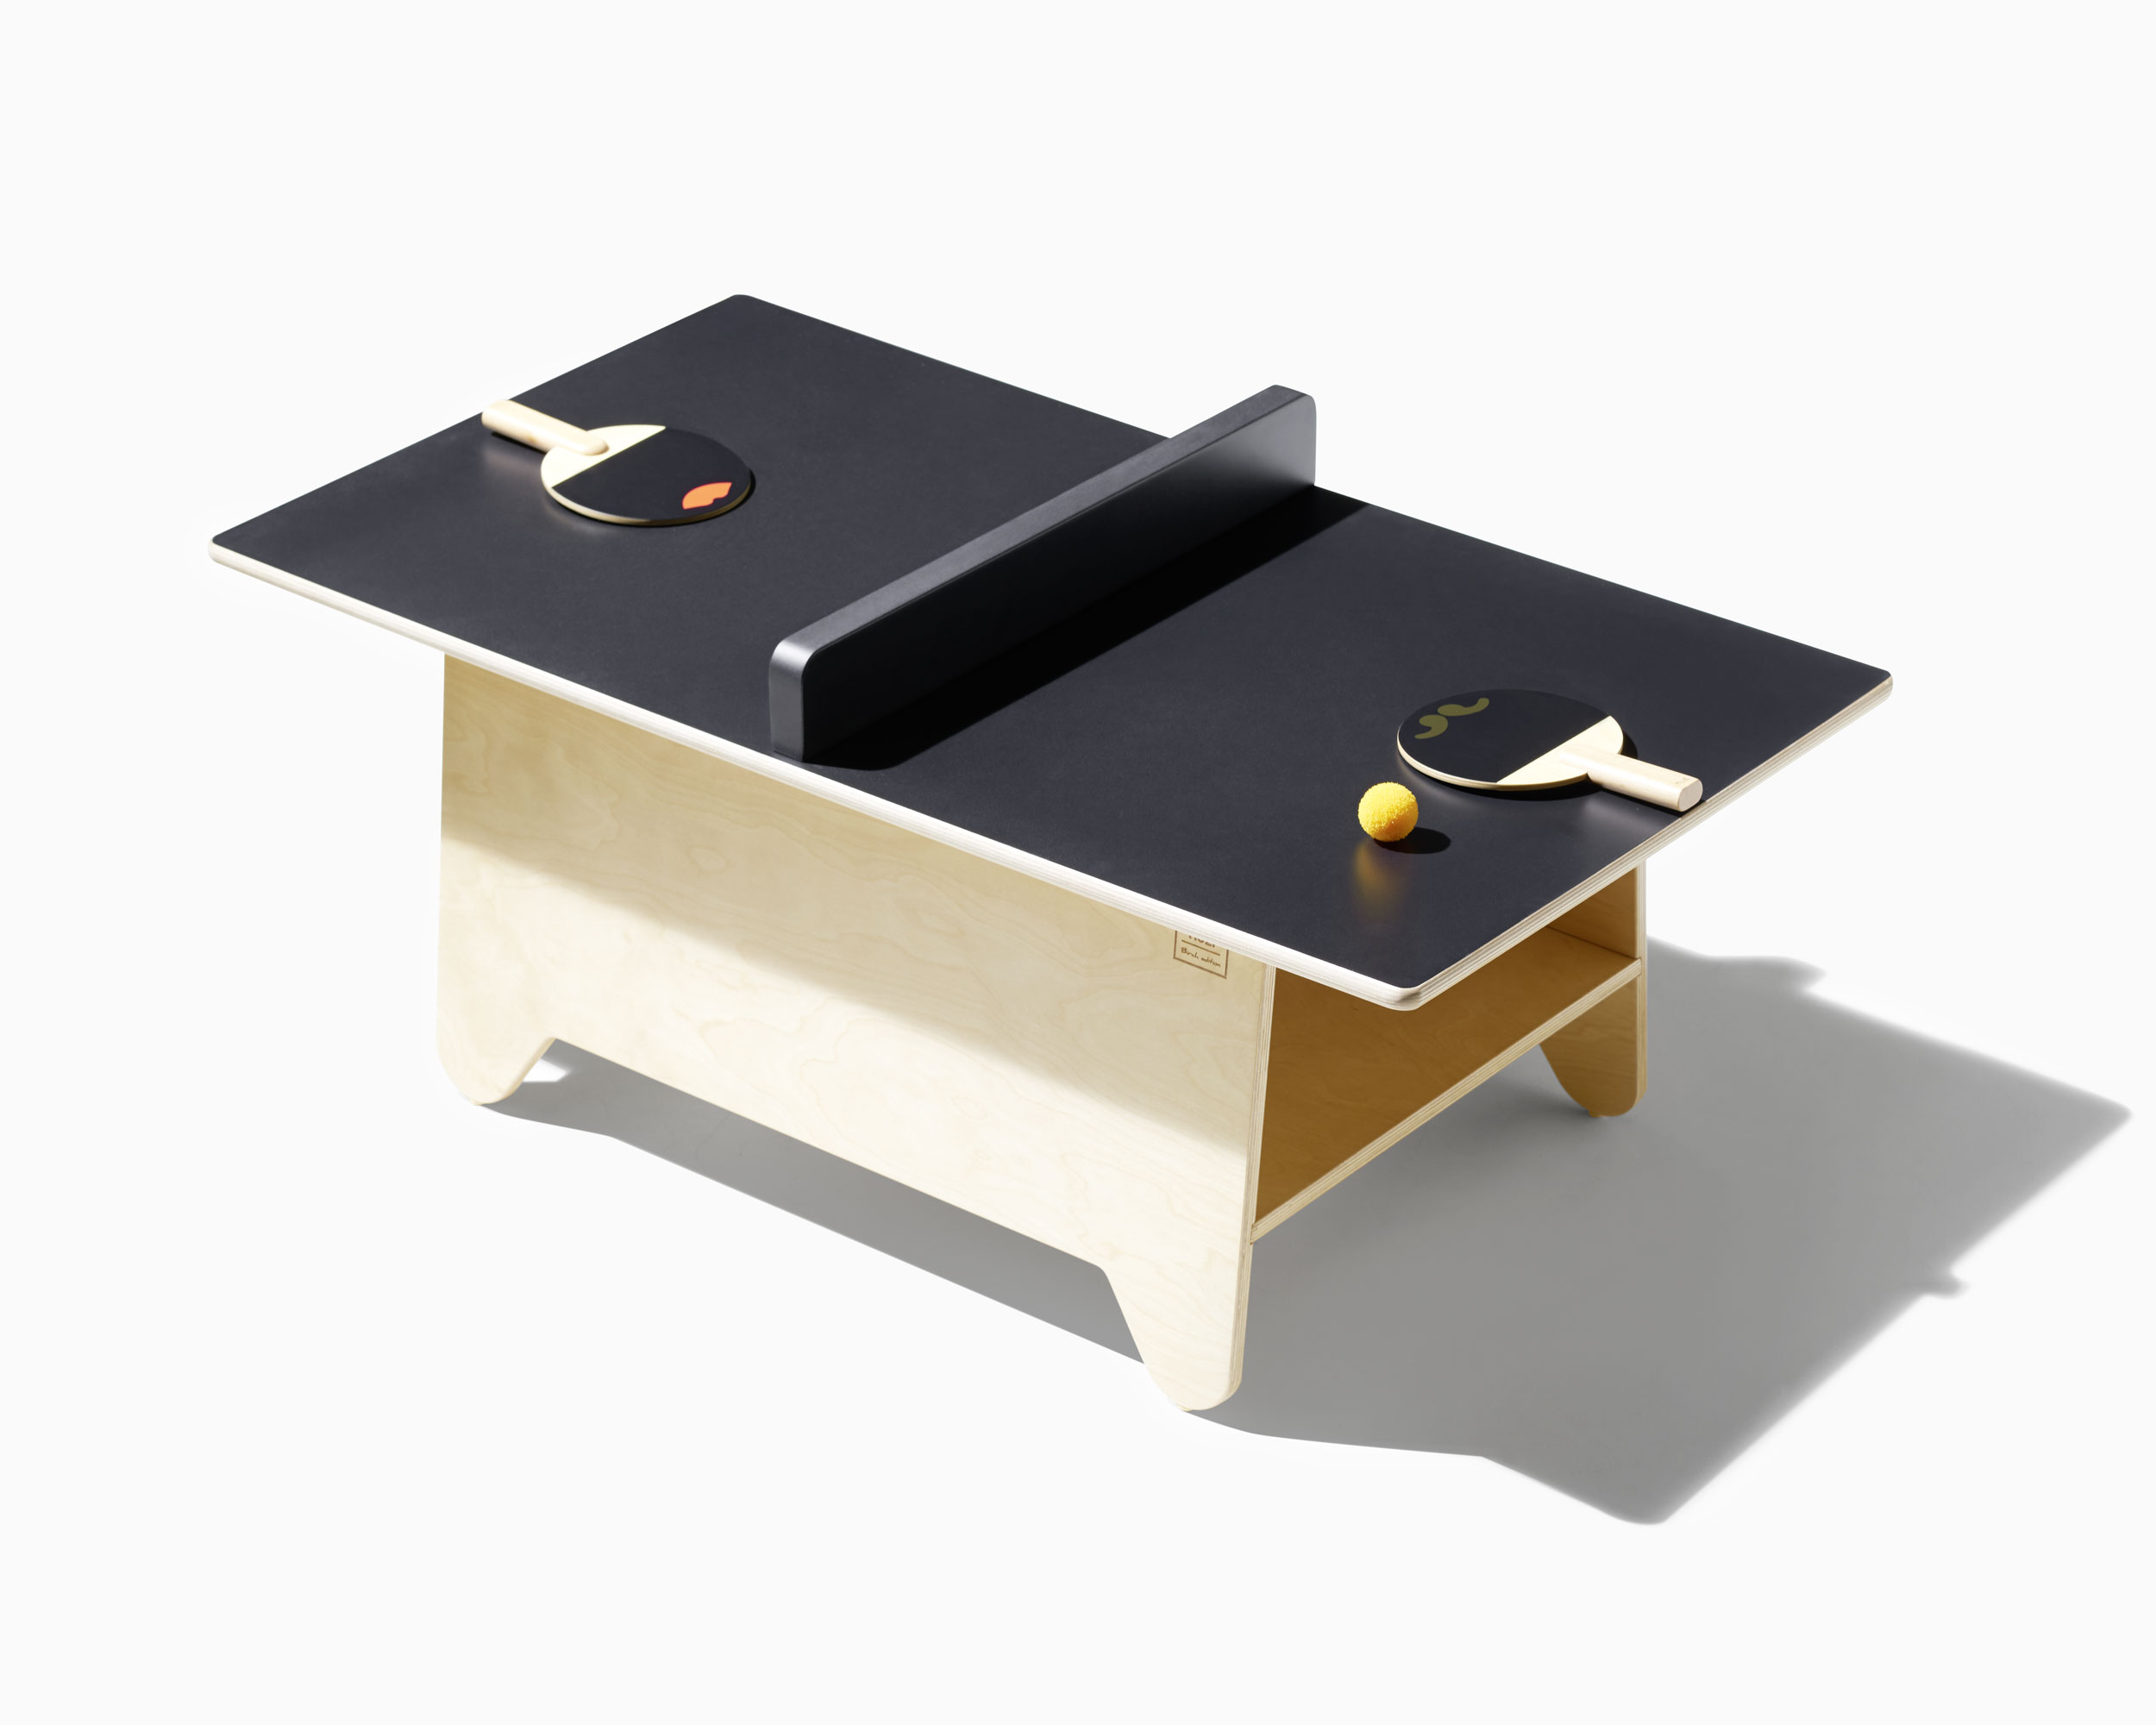 Table Tennis Table Multifunctional Coffee Table